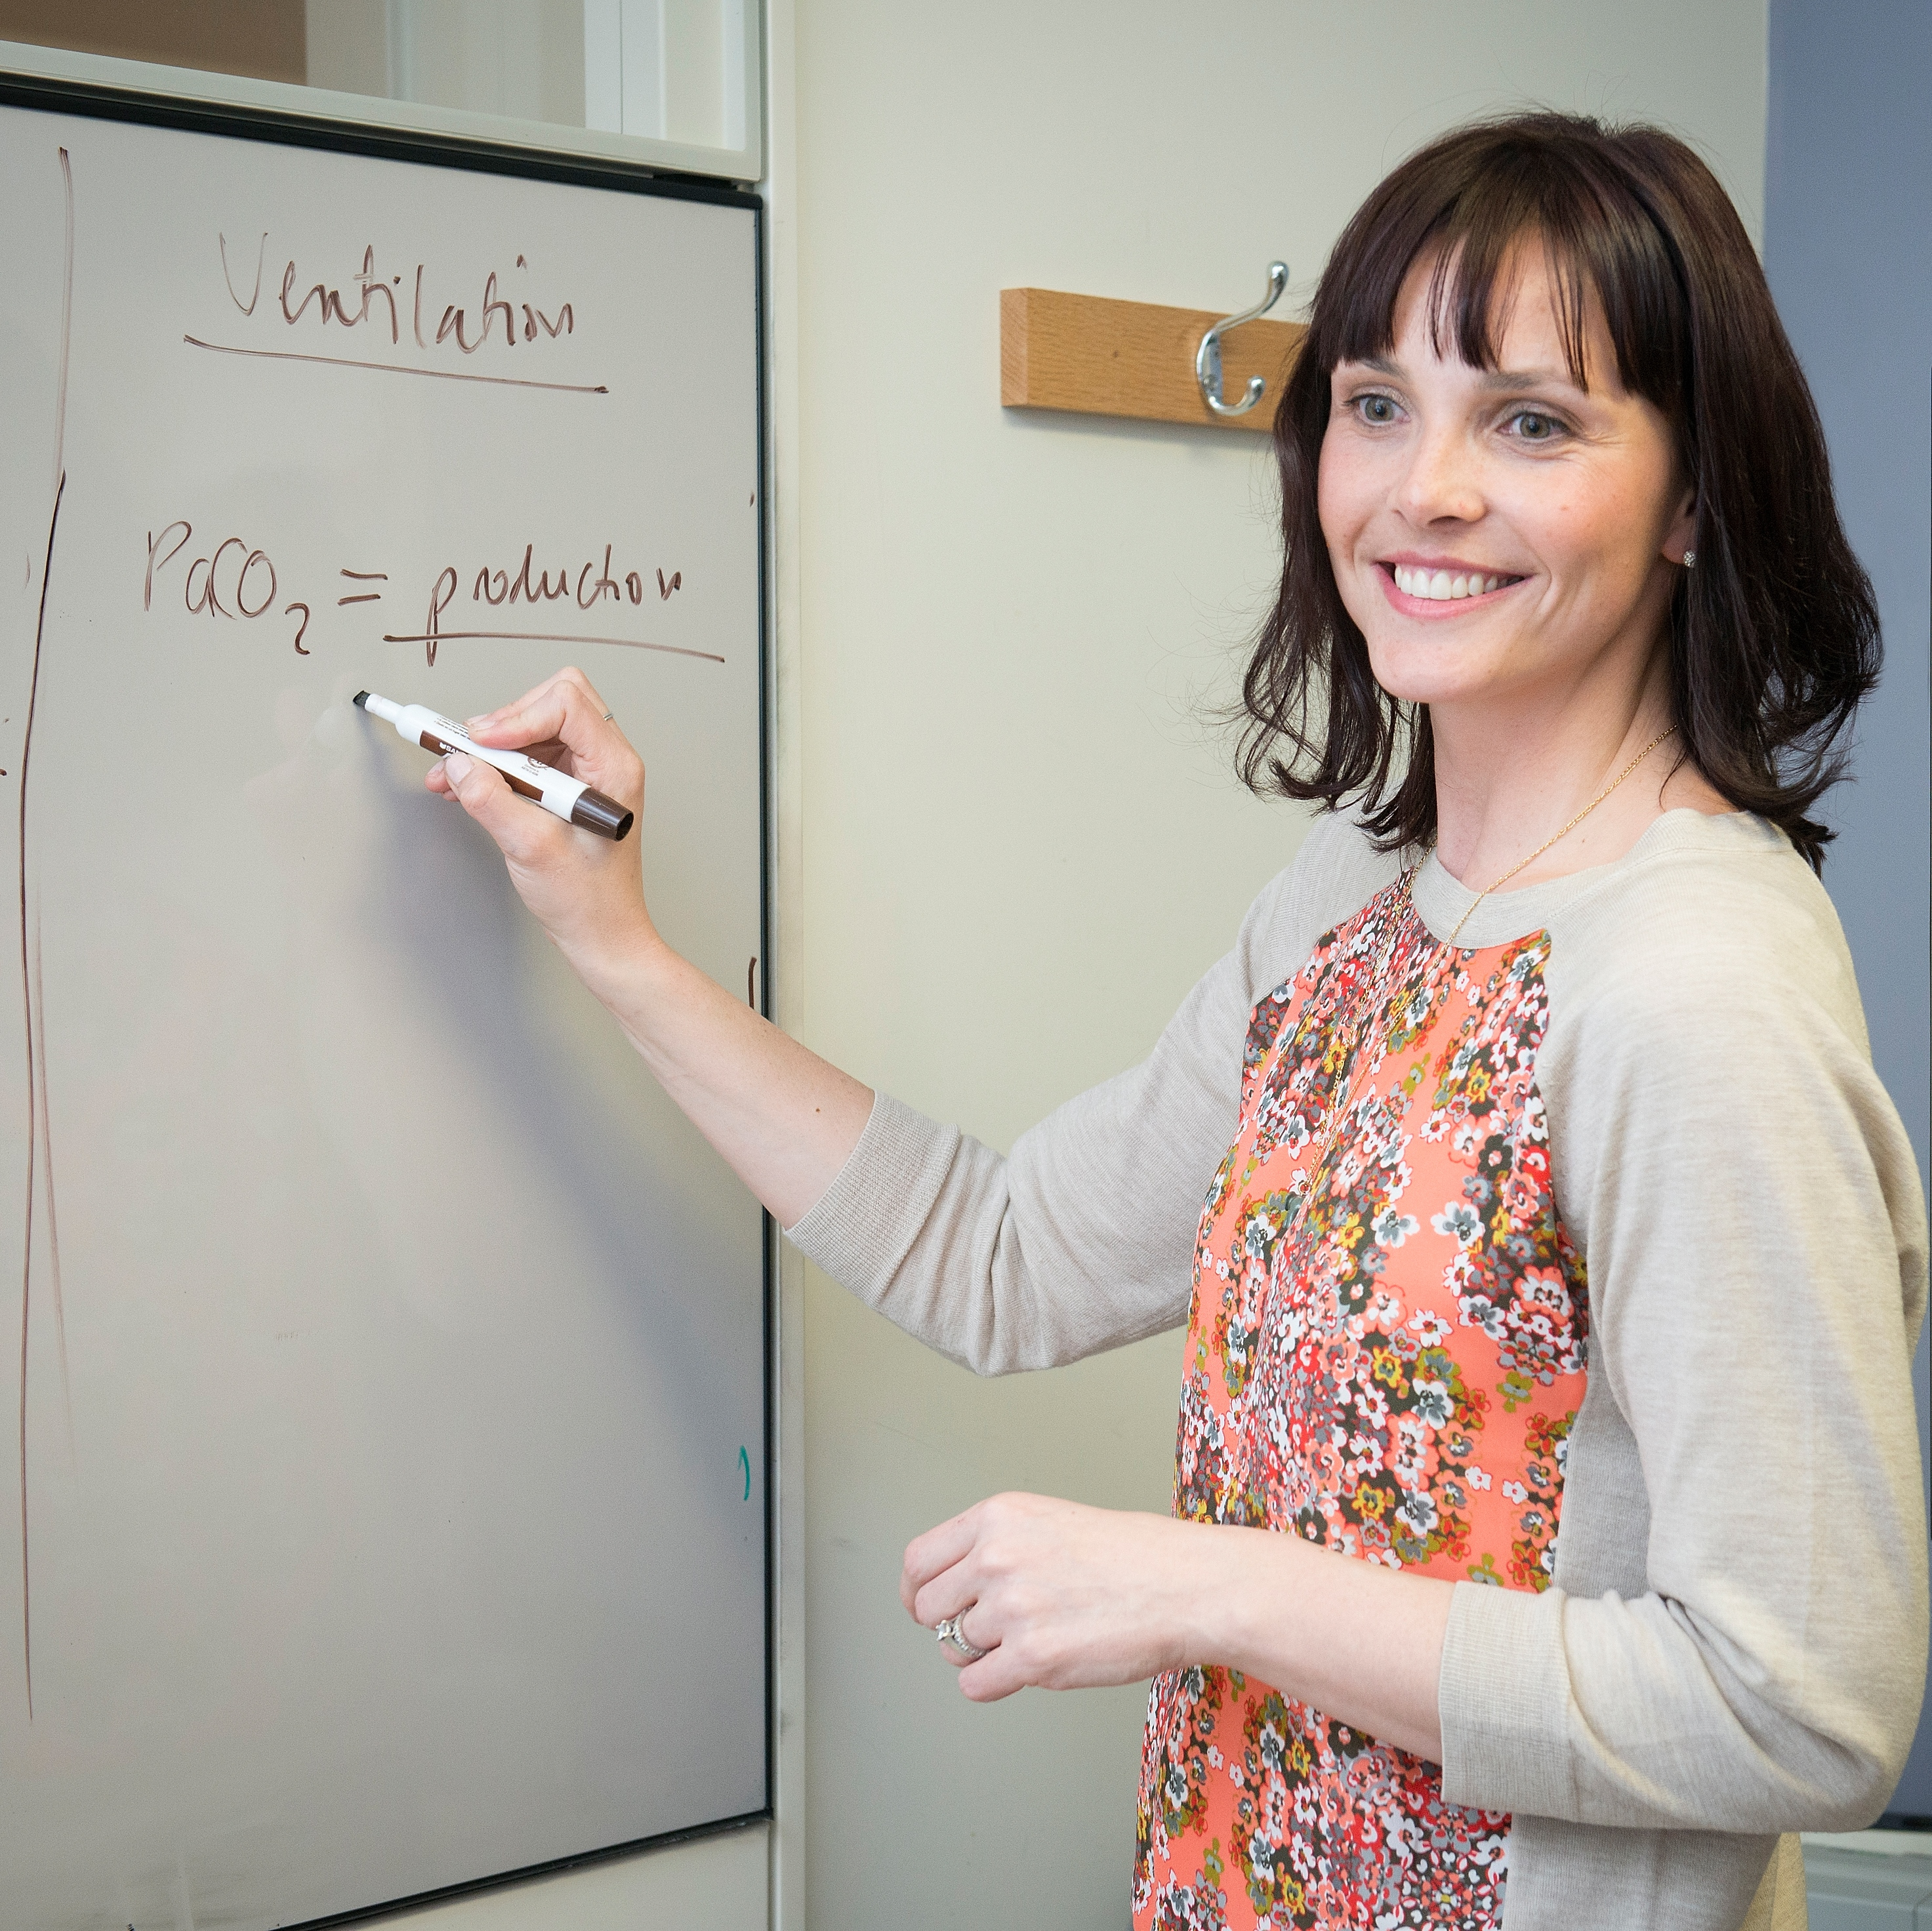 Physician teaching in clinic using a whiteboard